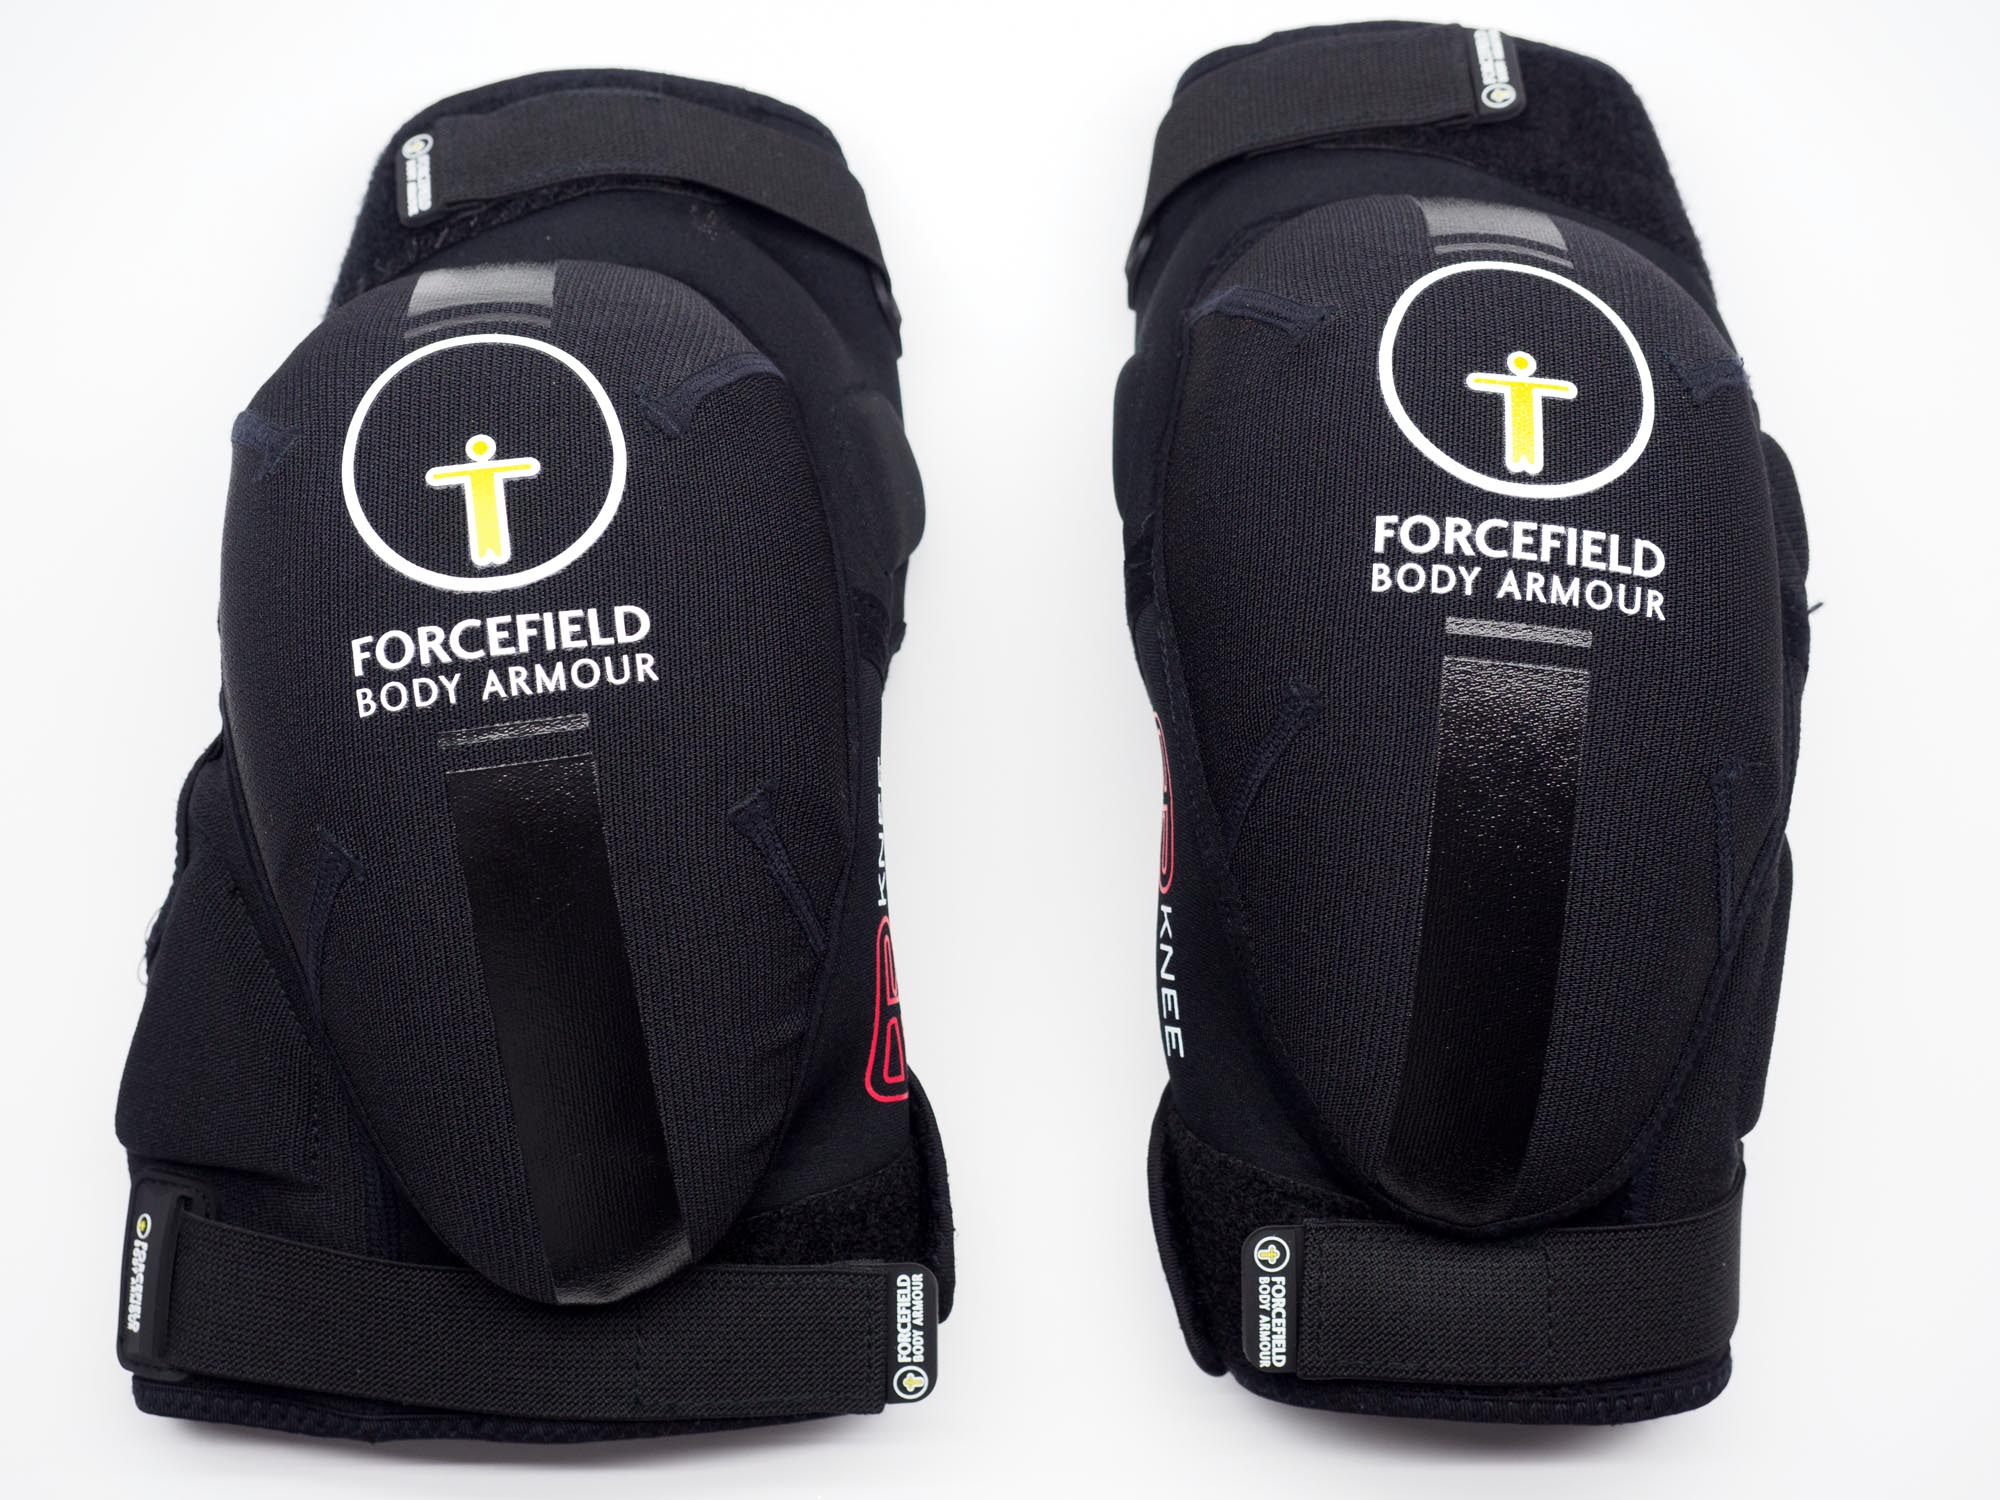 Forcefield AR Knee Protectors side by side